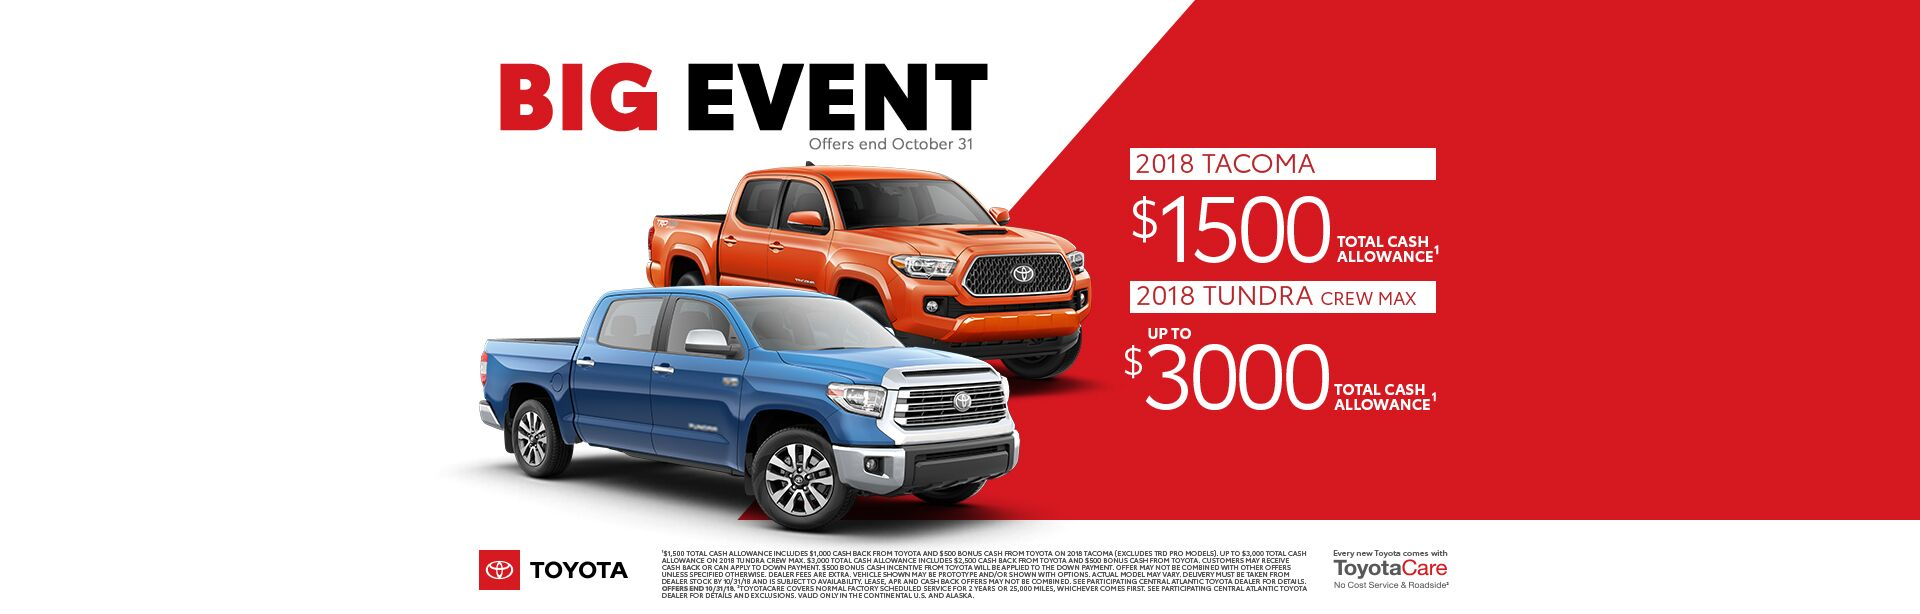 Big Event Tacoma/Tundra